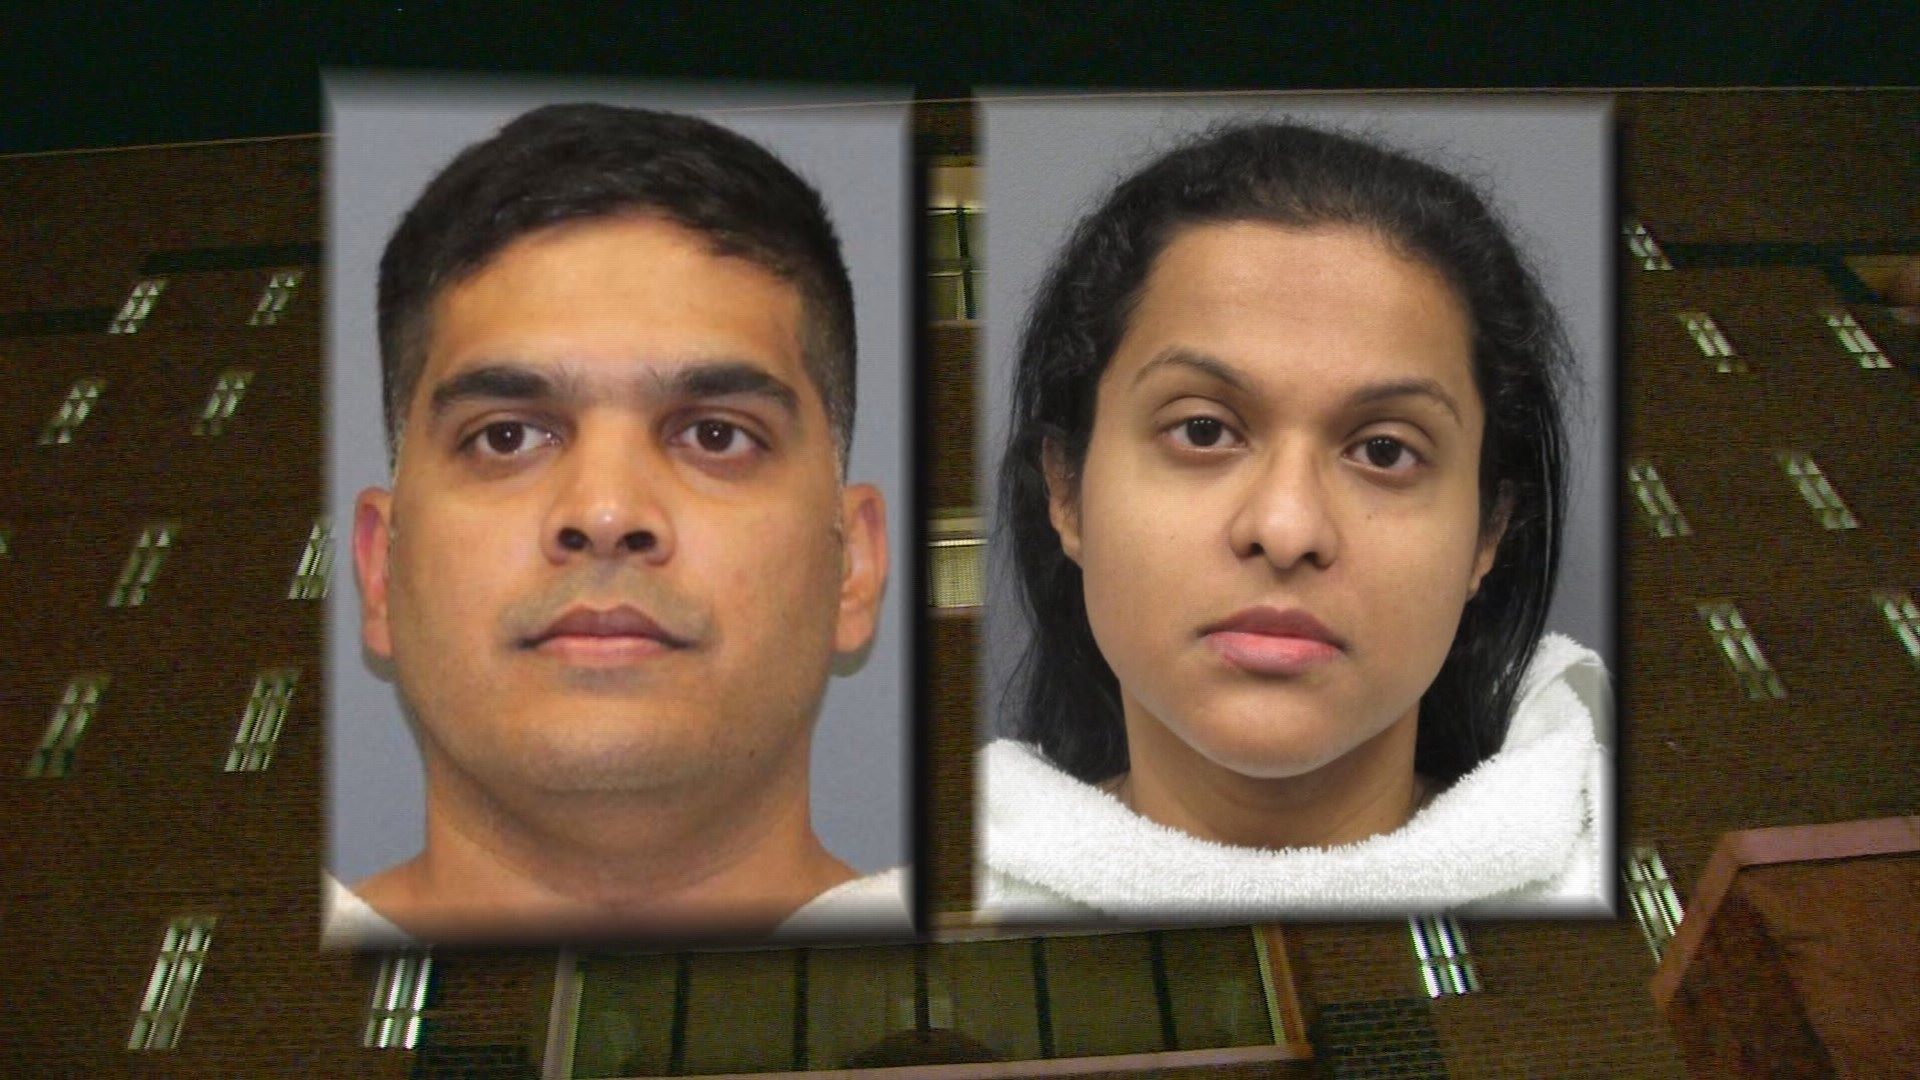 What to expect: Adoptive parents of Sherin Mathews returning to court